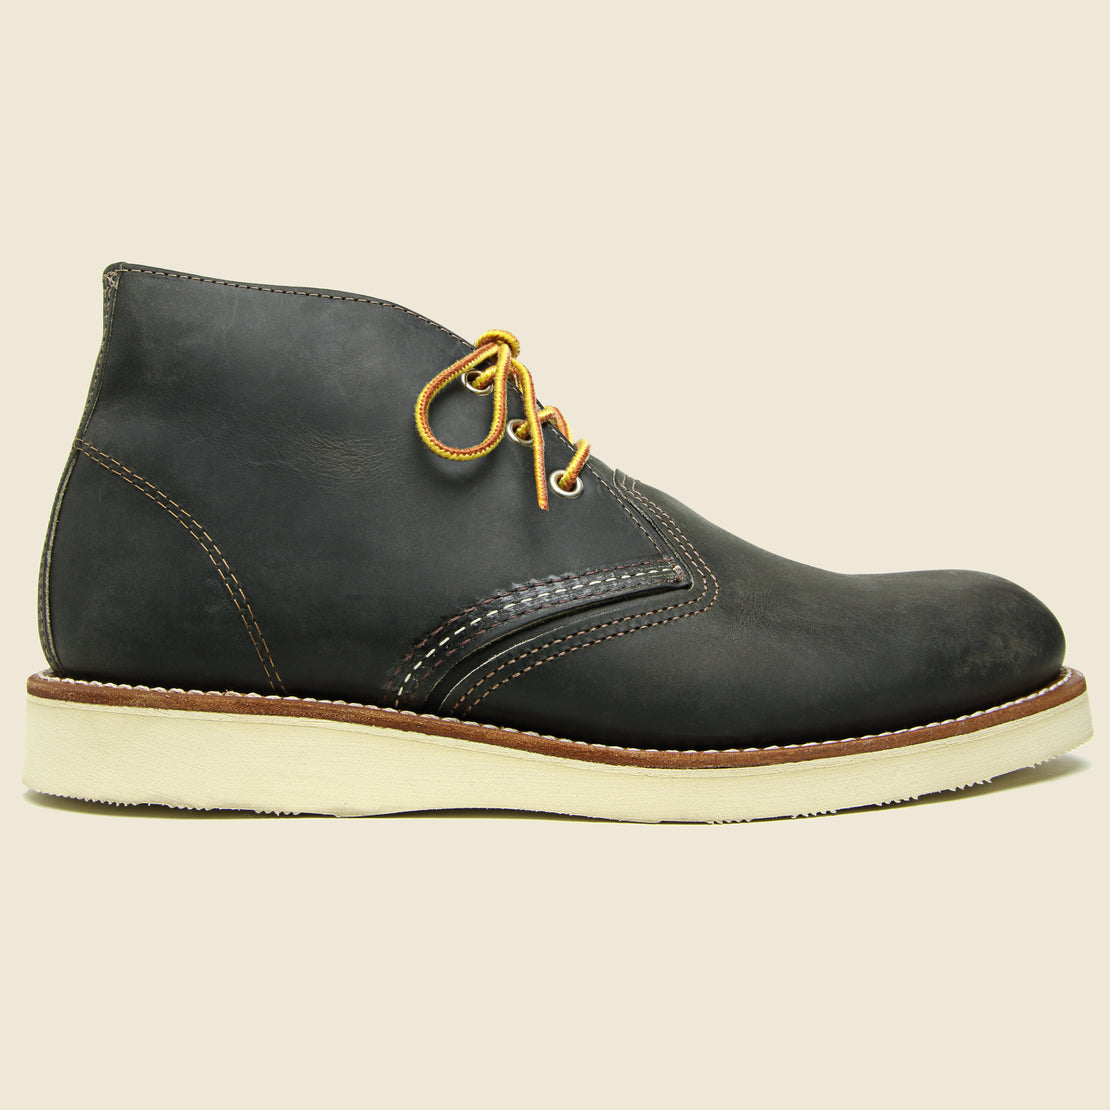 Red Wing Classic Chukka - Charcoal Rough & Tough